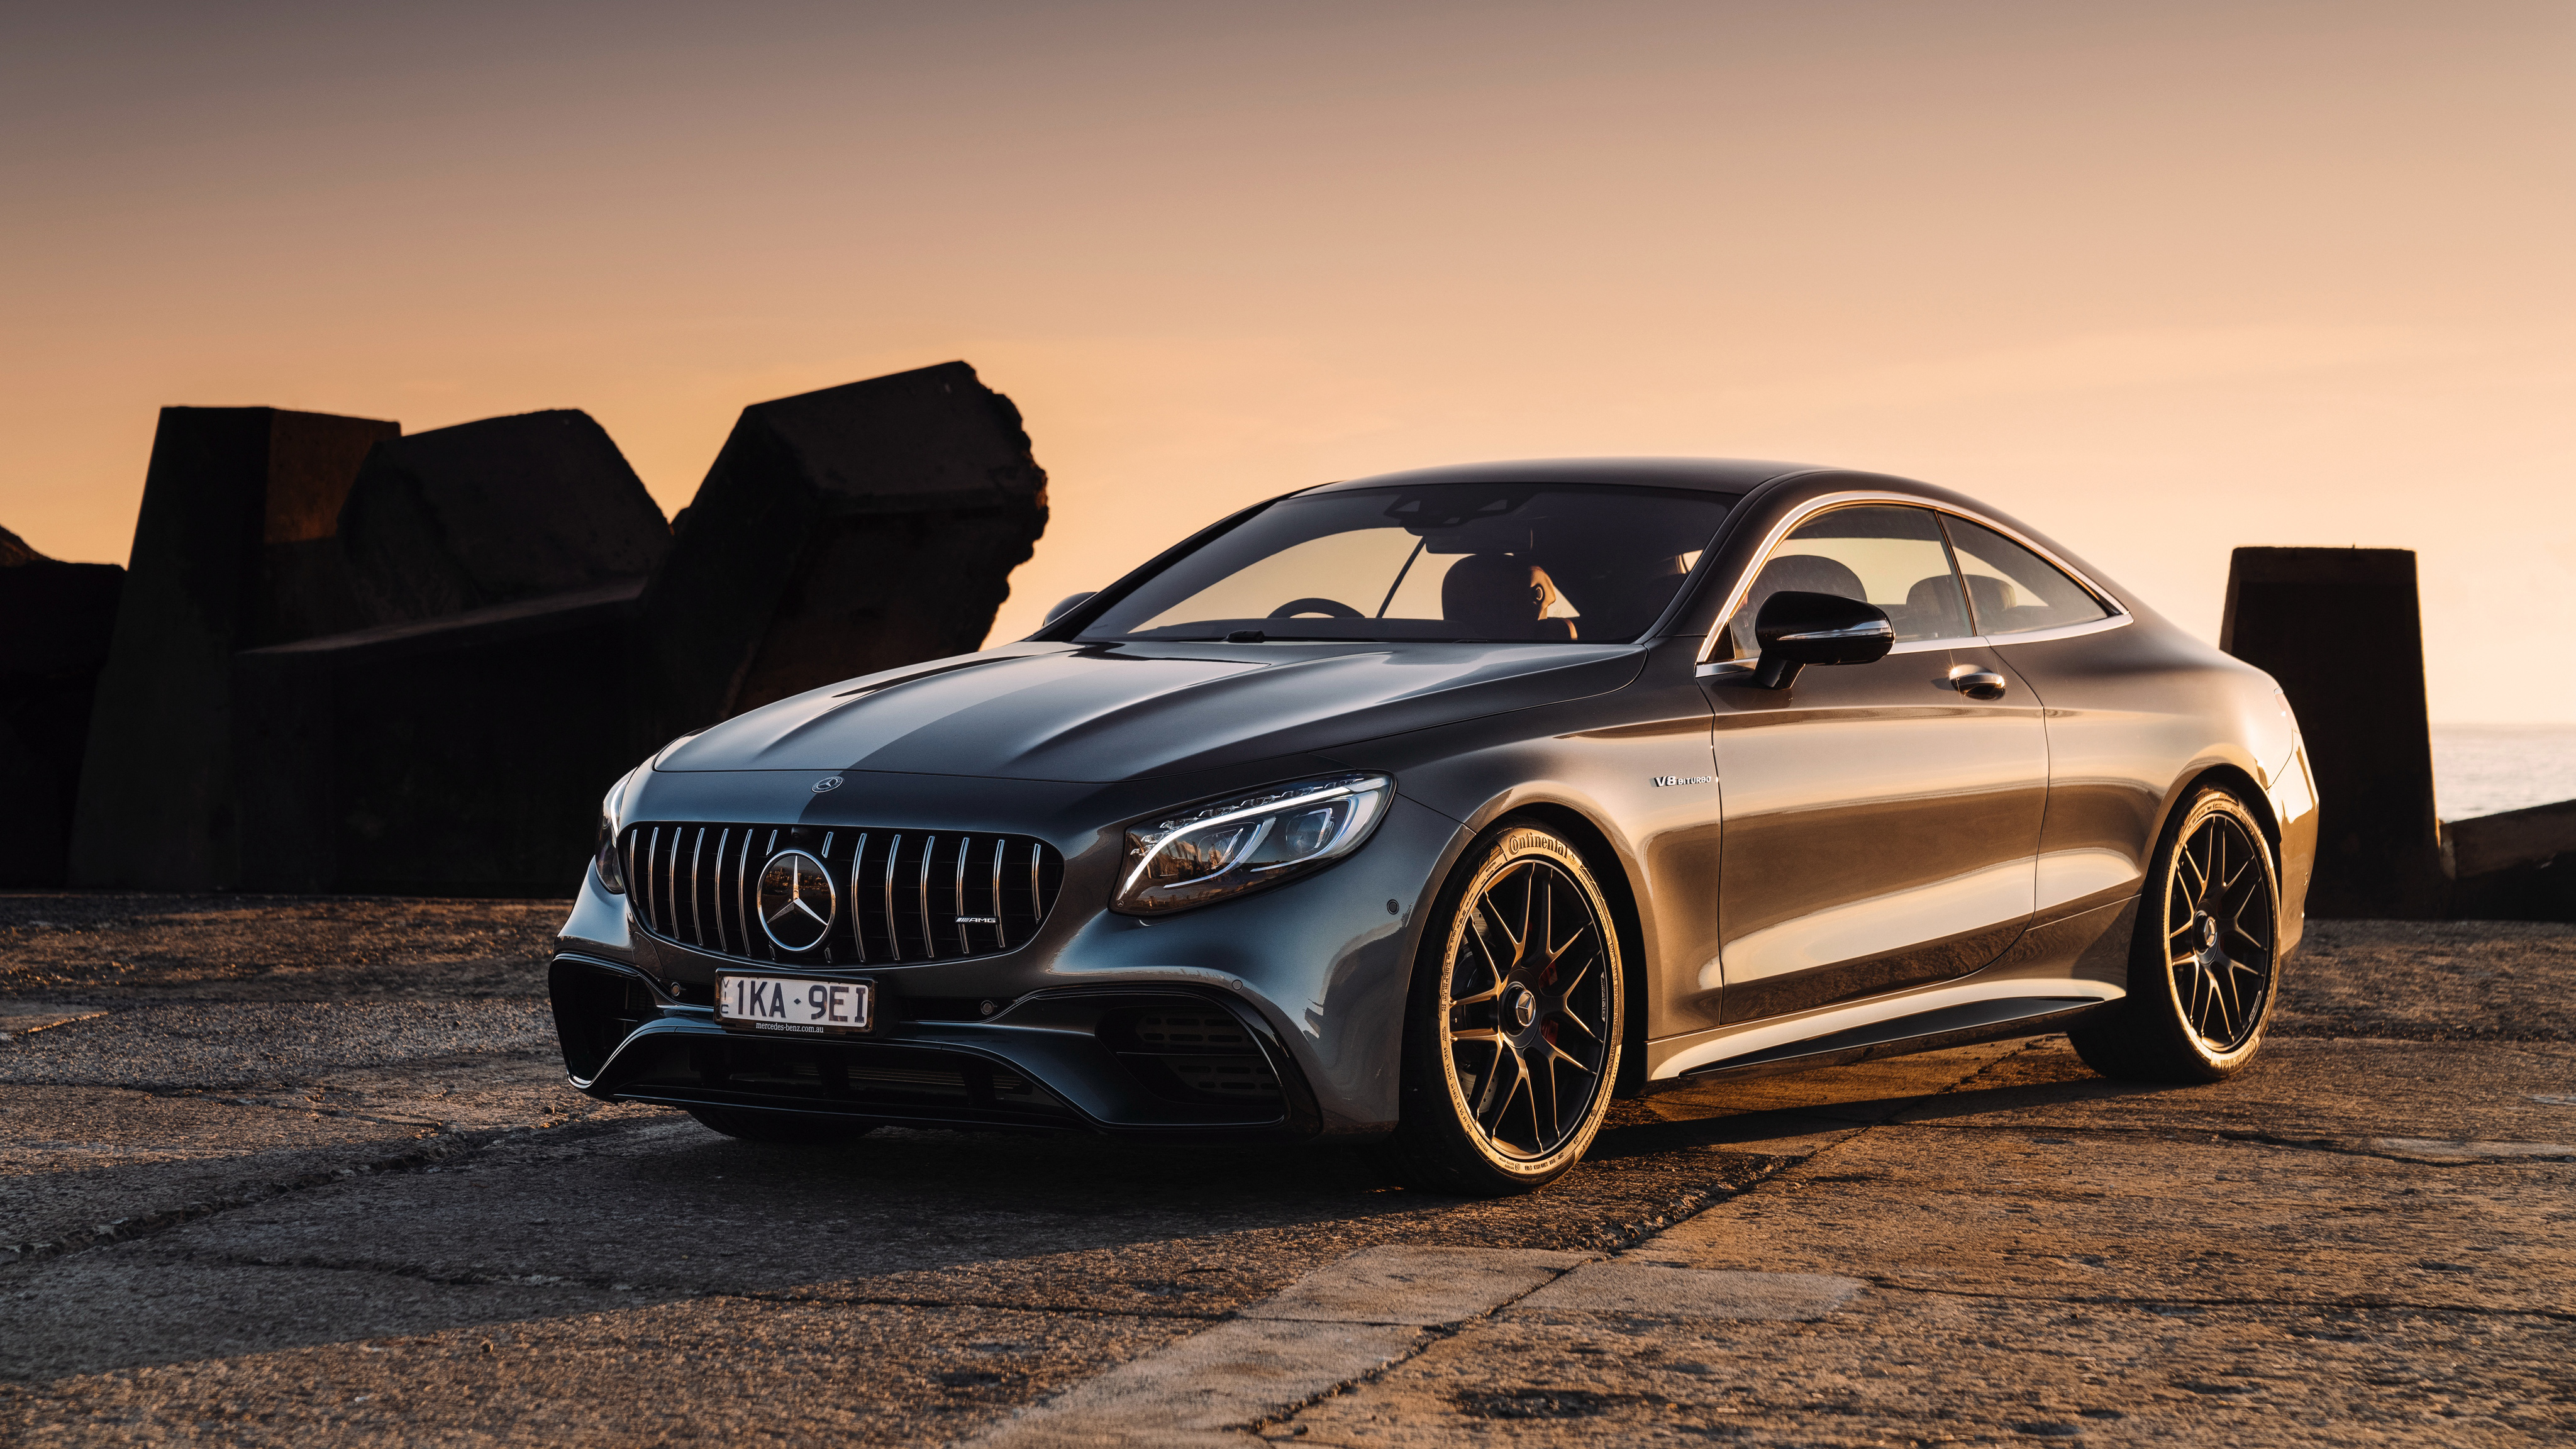 S 63 Amg Wallpaper: Mercedes-AMG S 63 4MATIC Coupe 4K Wallpaper